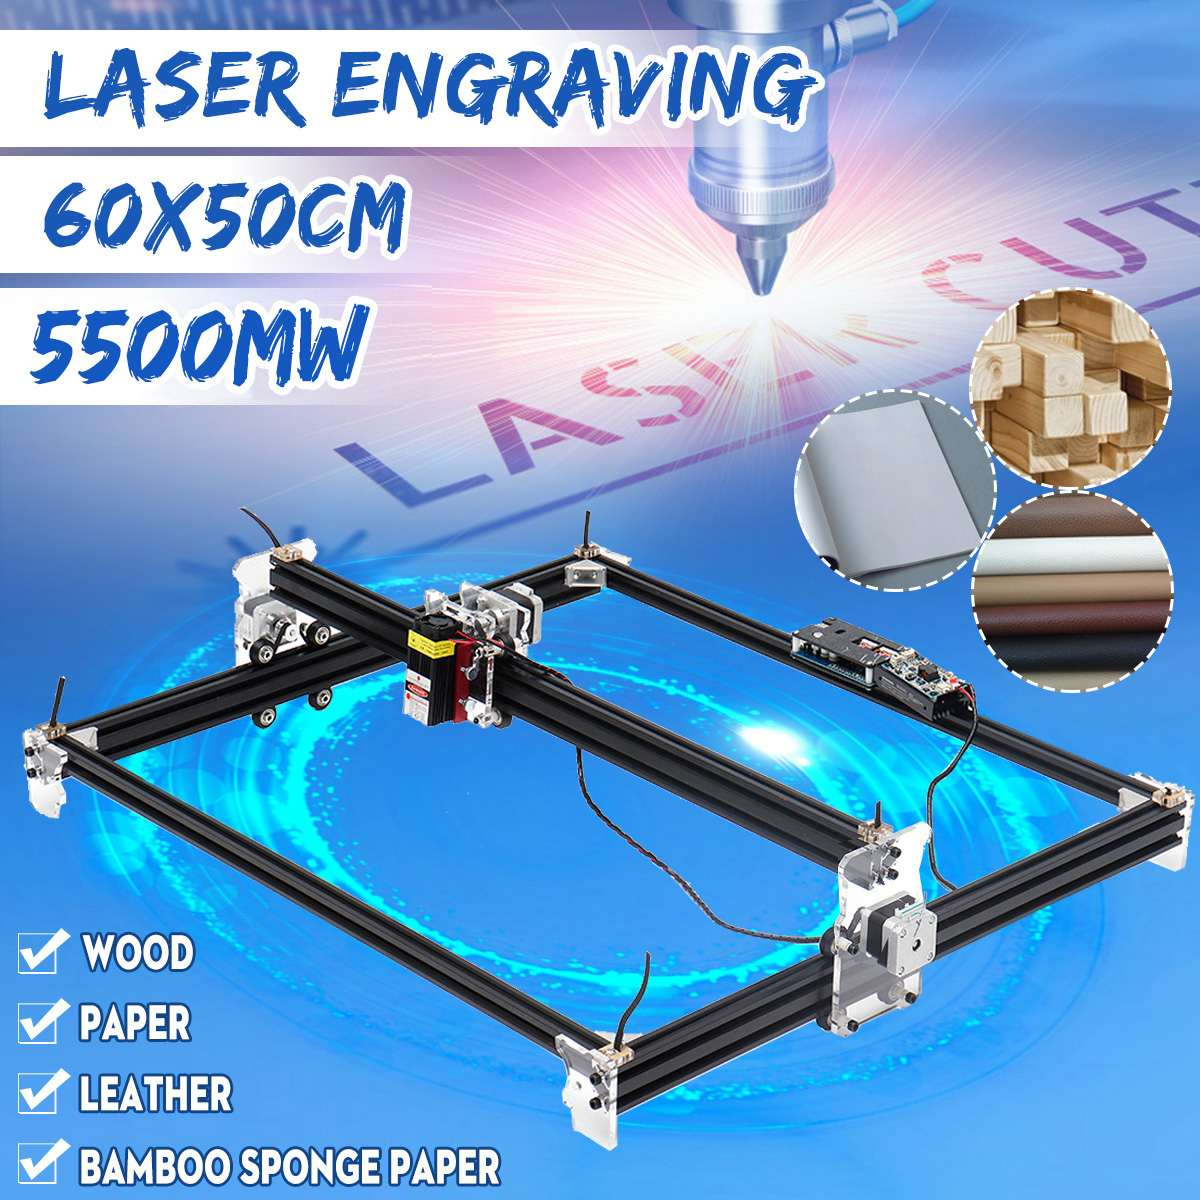 New 65*55cm Mini 5500MW Blue CNC Laser Engraving Machine 2Axis 12V DIY Home Engraver Desktop Wood Router/Cutter/Printer MachineNew 65*55cm Mini 5500MW Blue CNC Laser Engraving Machine 2Axis 12V DIY Home Engraver Desktop Wood Router/Cutter/Printer Machine